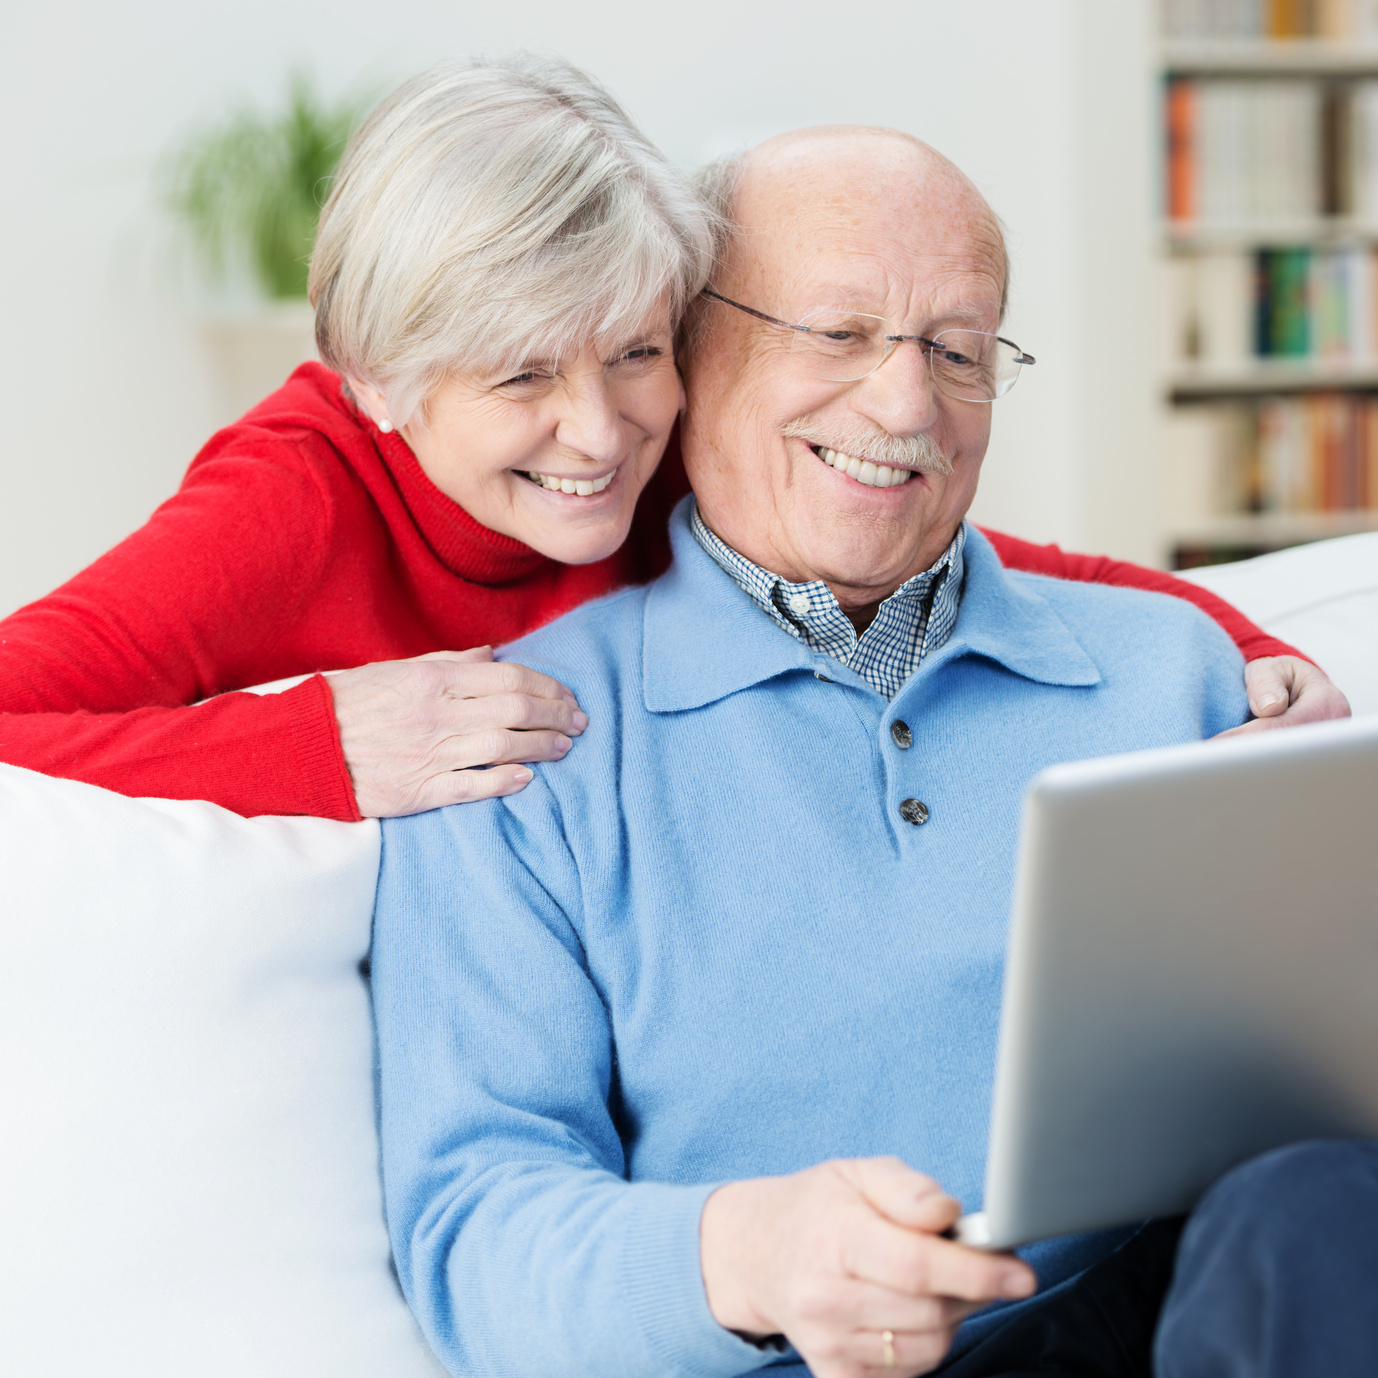 Retirement Planning | Retirement Living | Social Security | Wiseradvisor.com